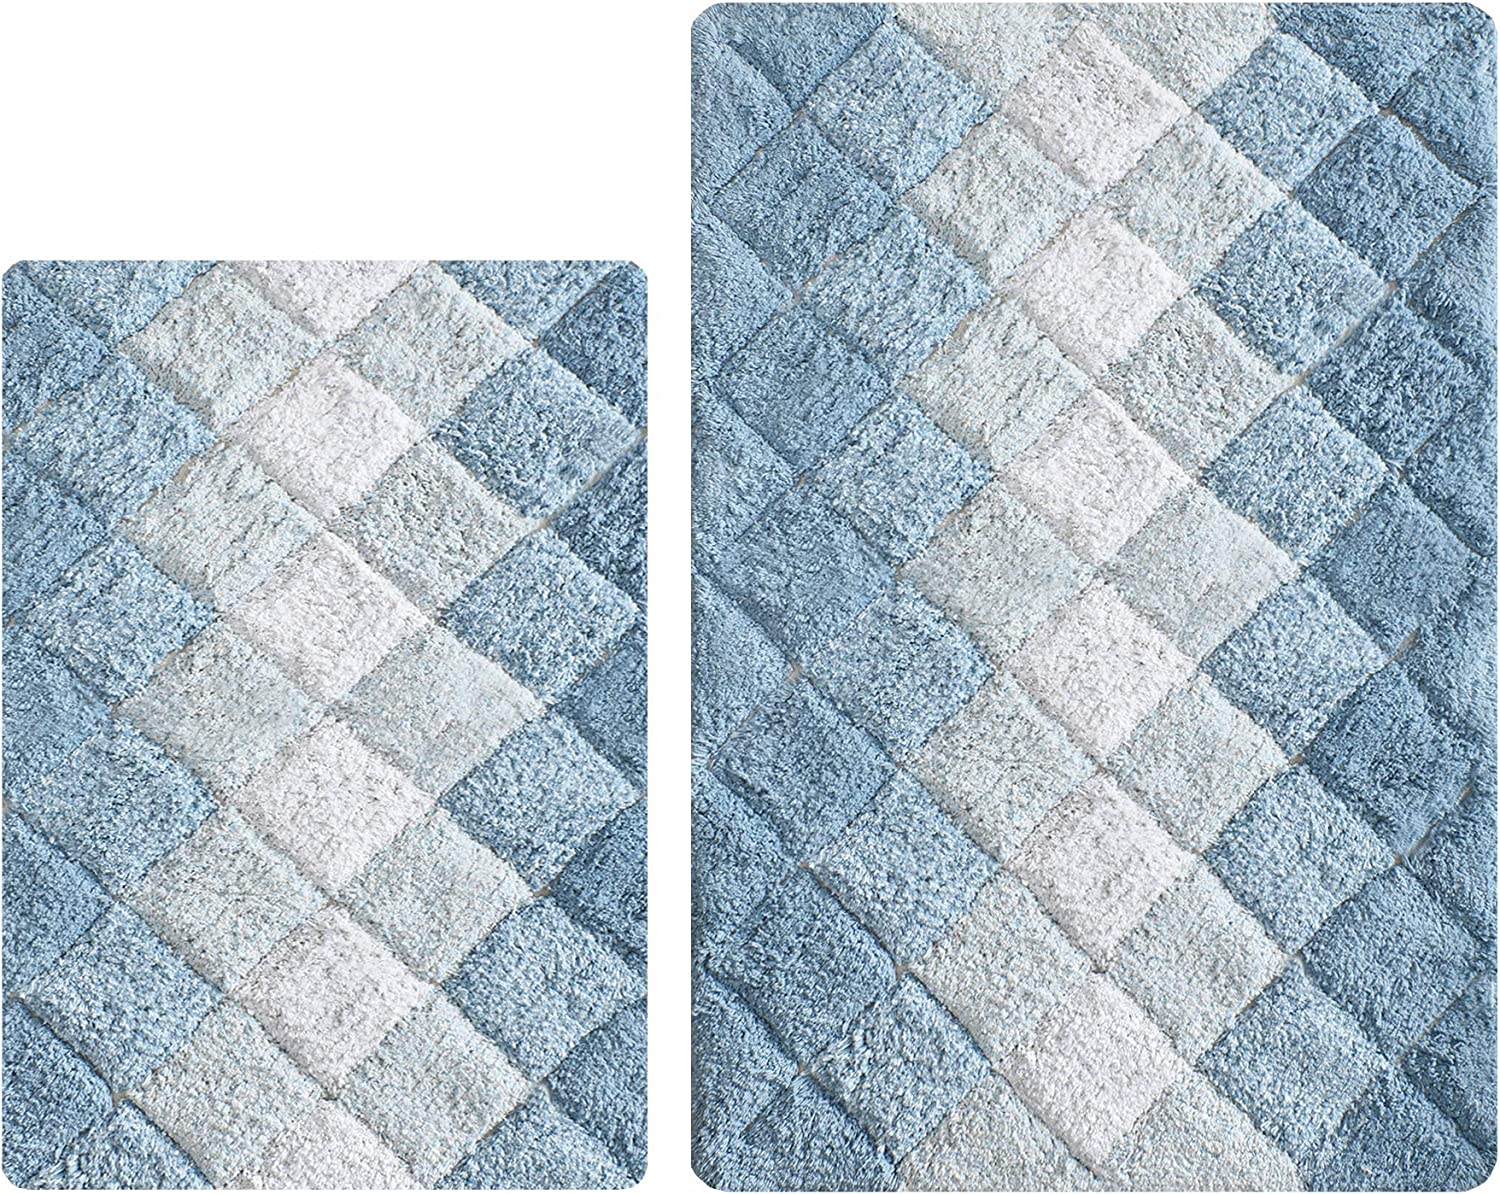 Bathroom Rugs Set 2 Piece in 100% Cotton Albany Inspired Bath Rugs 21x32/17x34, Blue Combo,Anitskid Bath Rugs Set,Cotton Bath Mat,Cotton Bath Rugs,Soft Absorbent Machine Washable,Non Slip Bath Rug